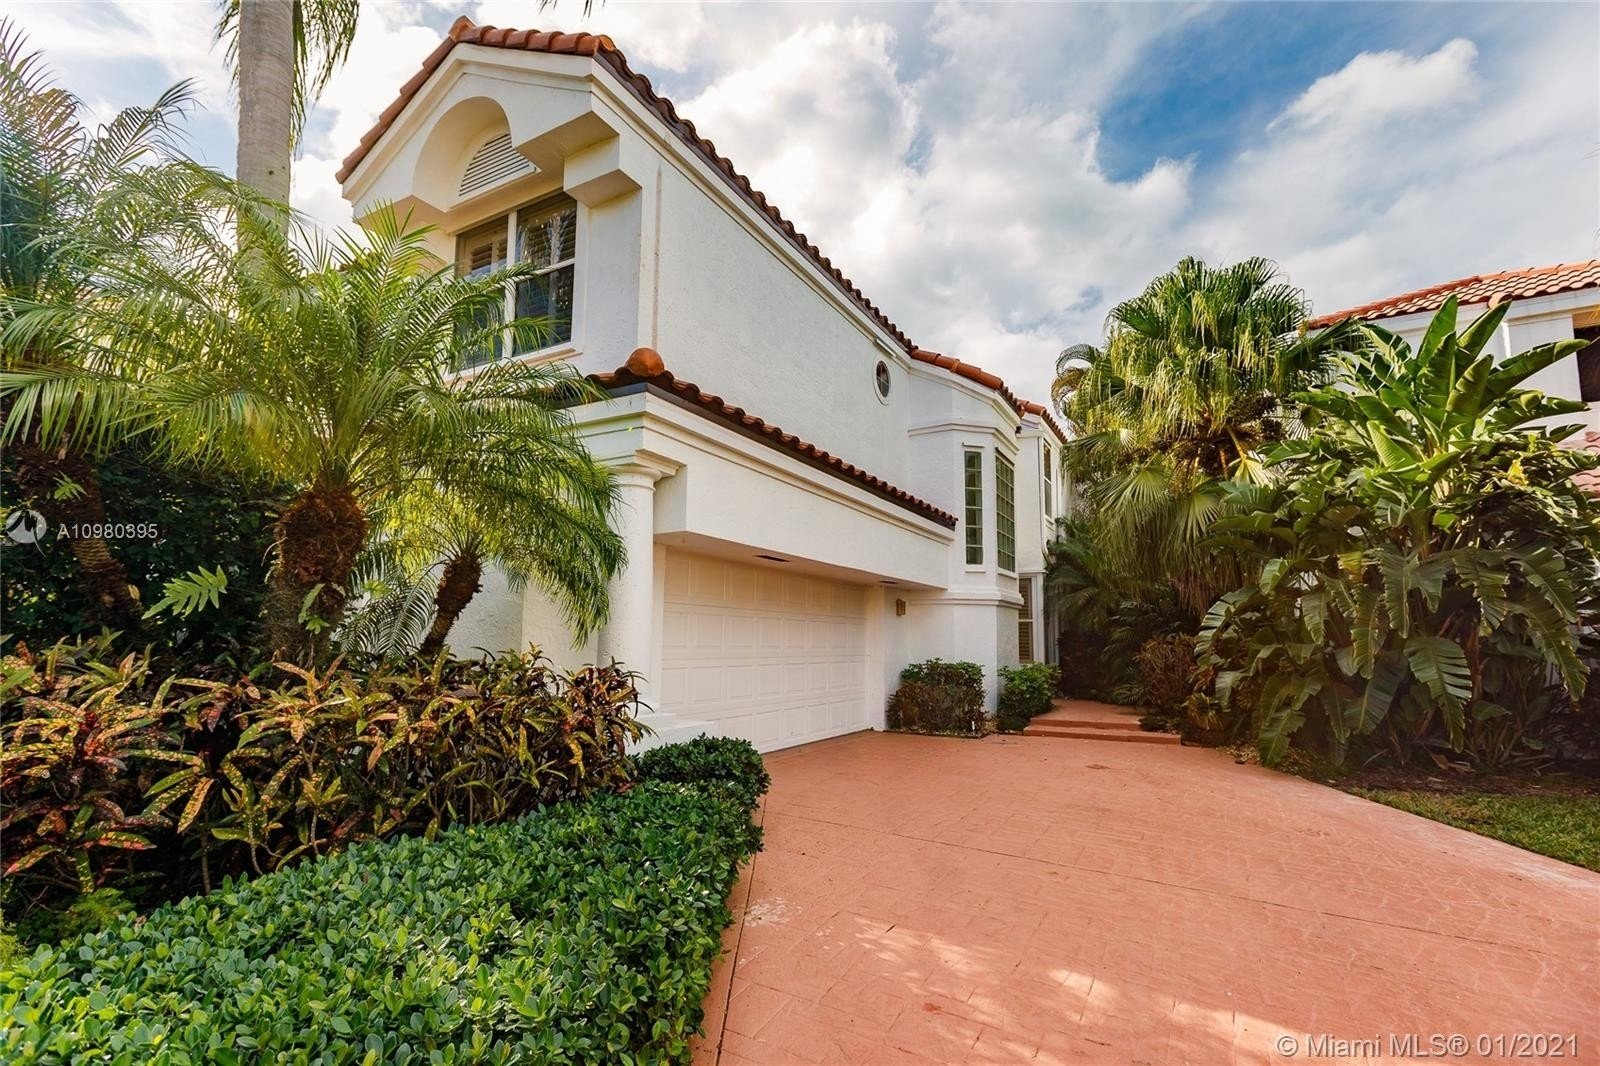 Single Family Home for Sale at Boca Golf and Tennis Club, Boca Raton, FL 33487